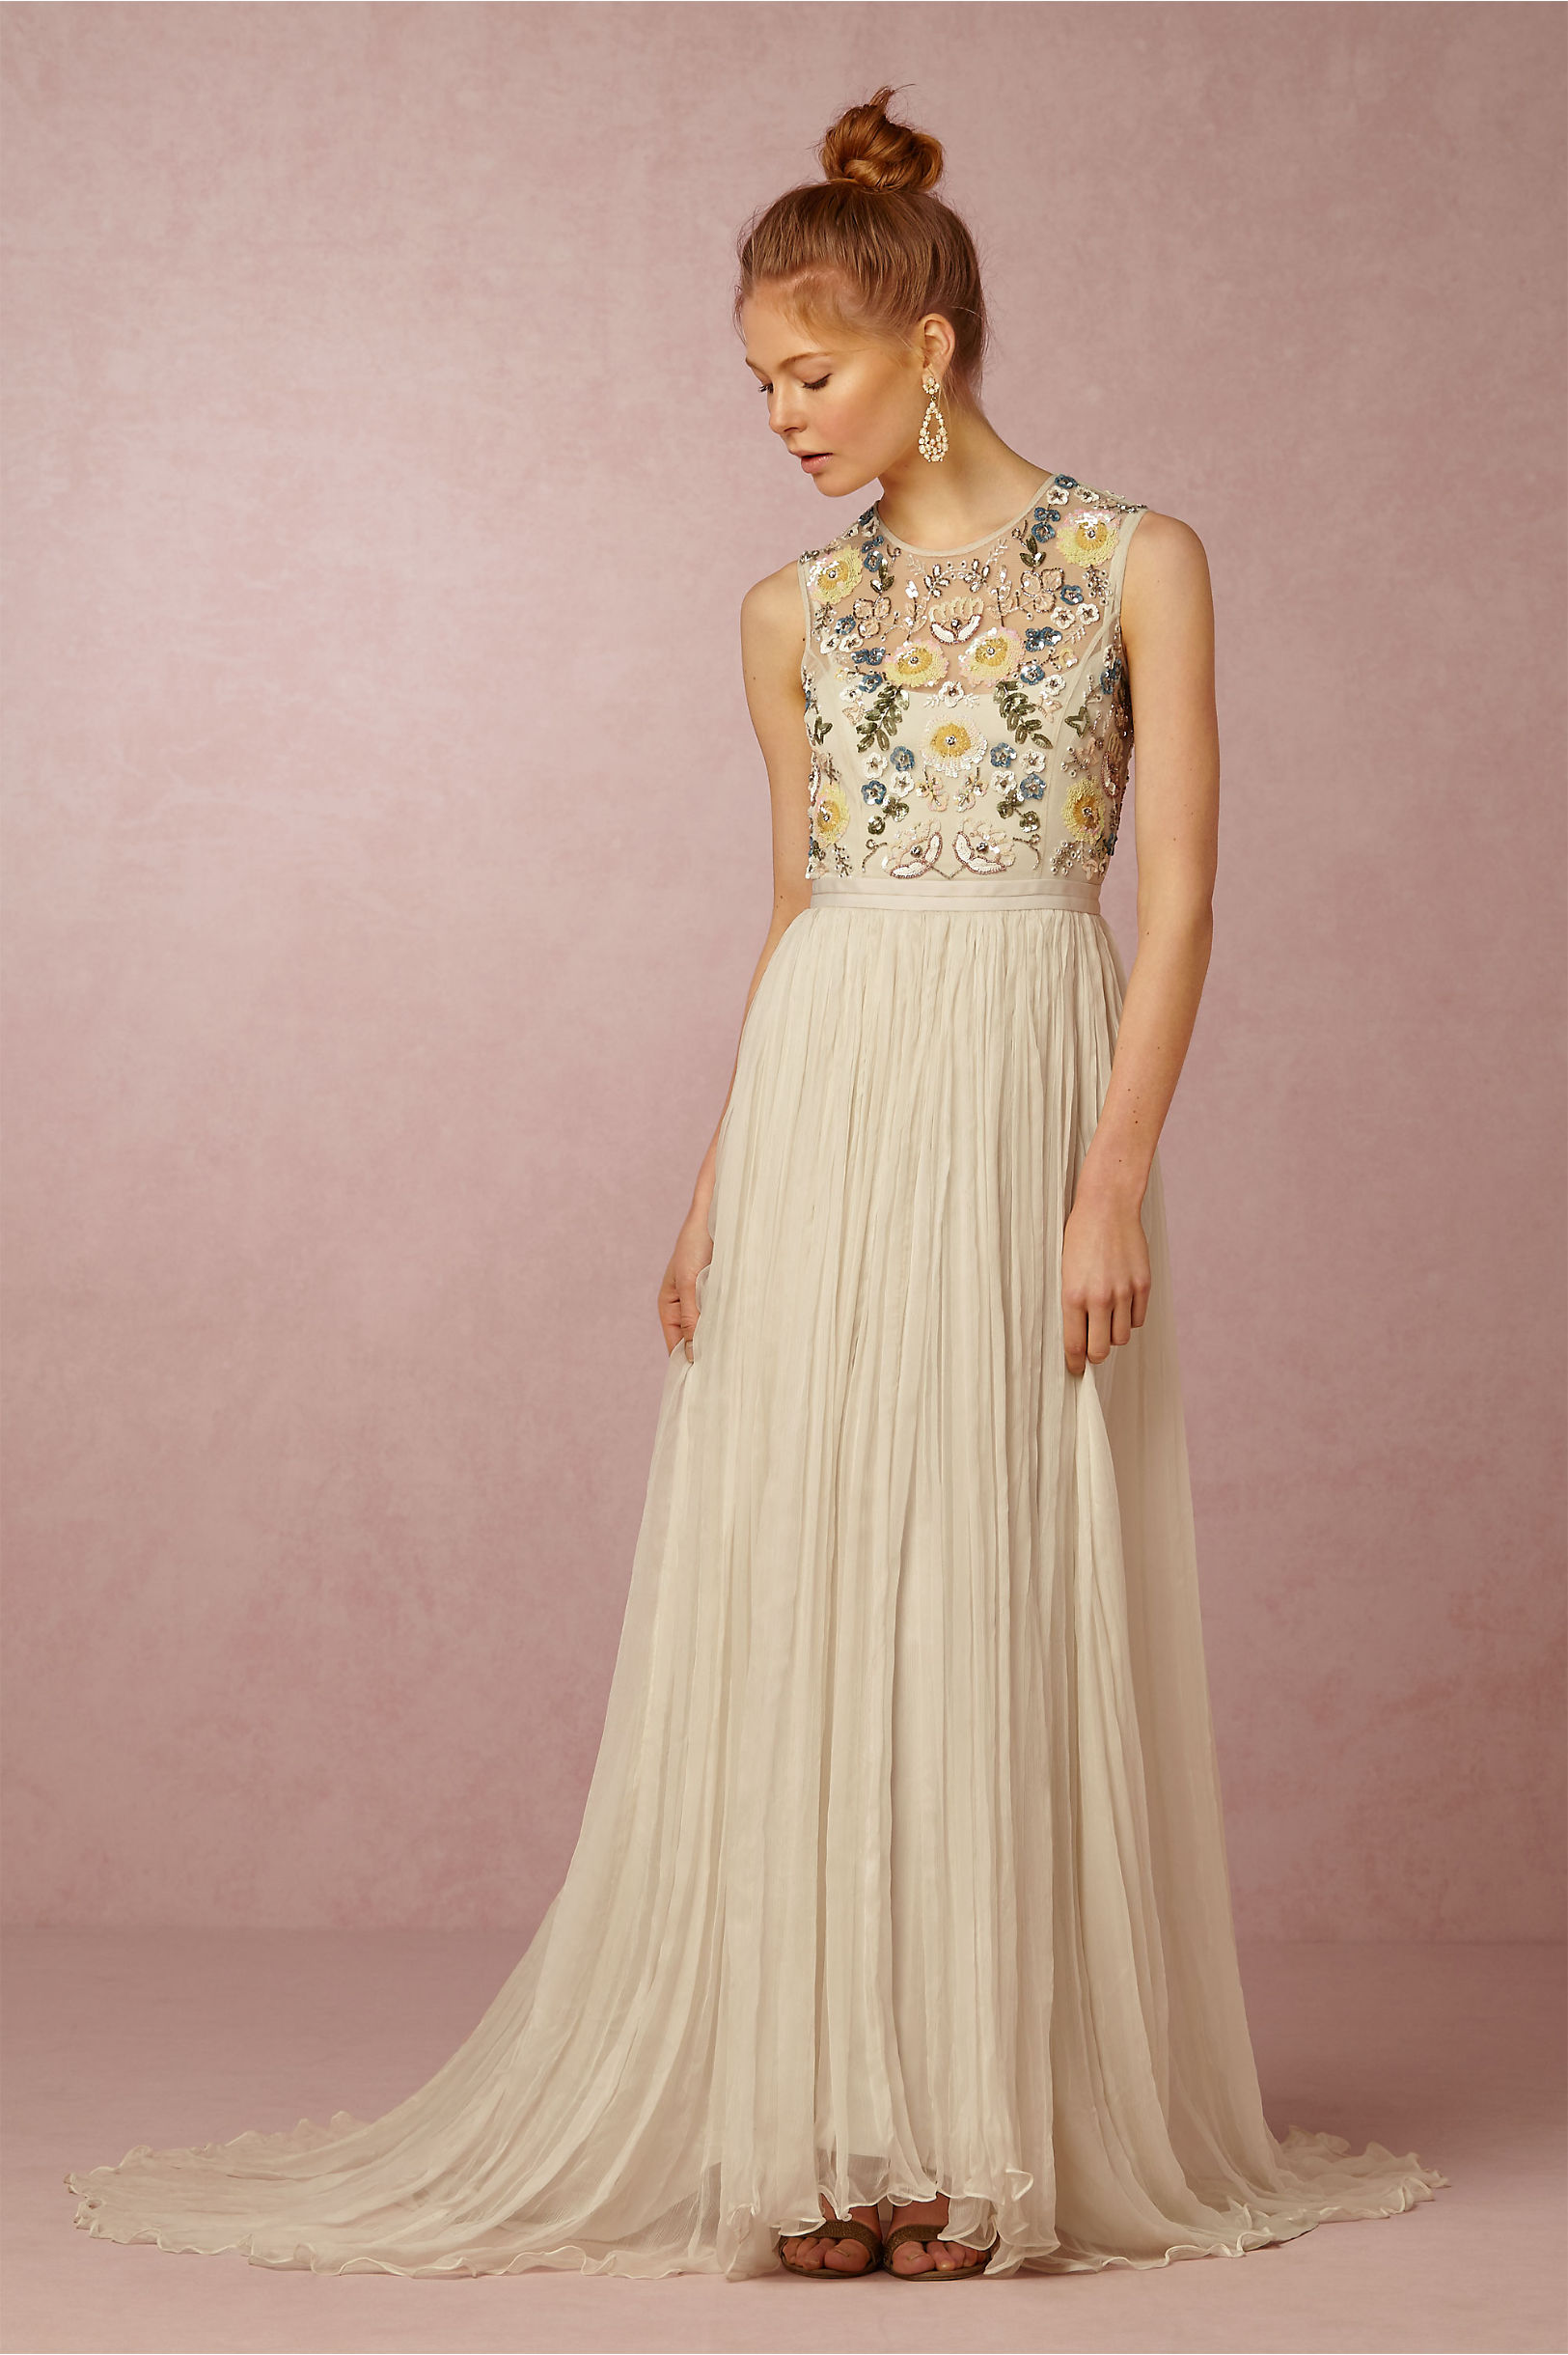 Paulette Dress in Bride | BHLDN